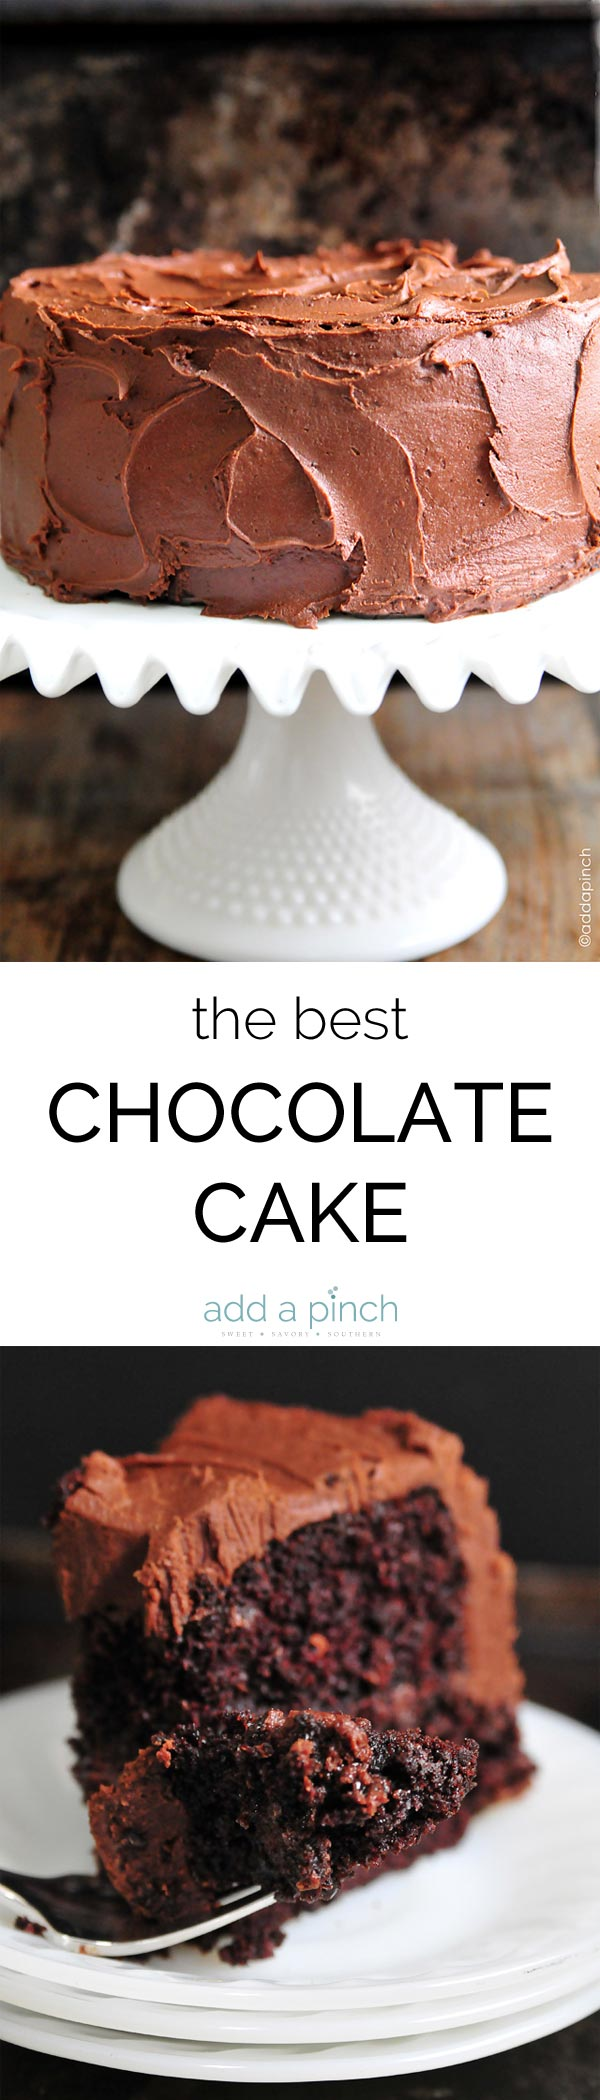 The Best Chocolate Cake Recipe - Cooking | Add a Pinch